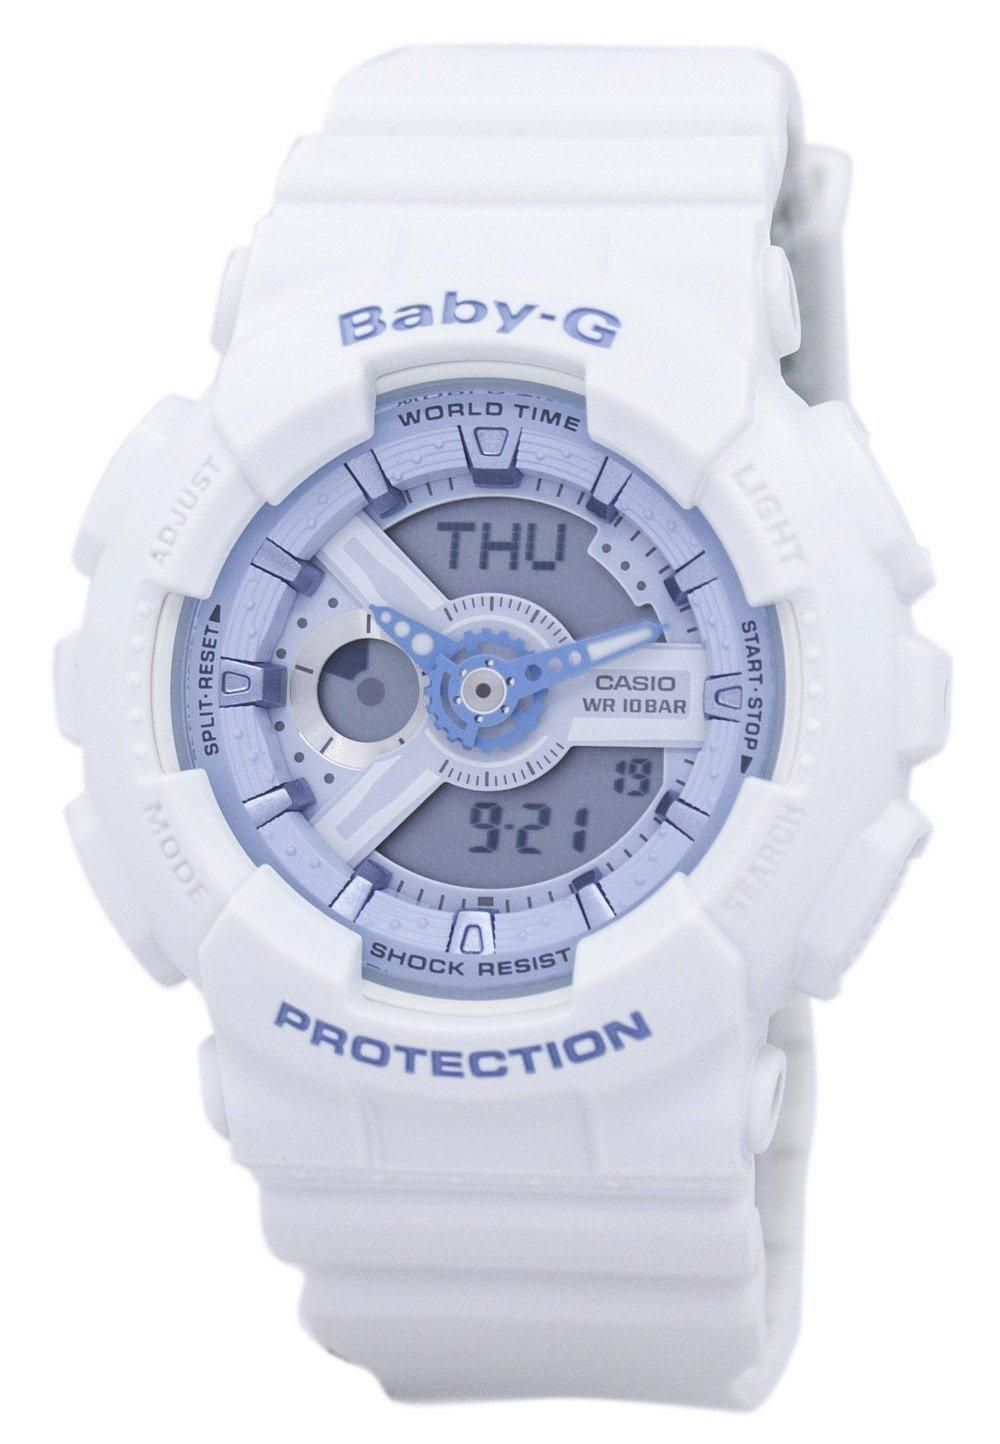 Casio Baby G Shock Resistant World Time Analog Digital Ba 110be 7a